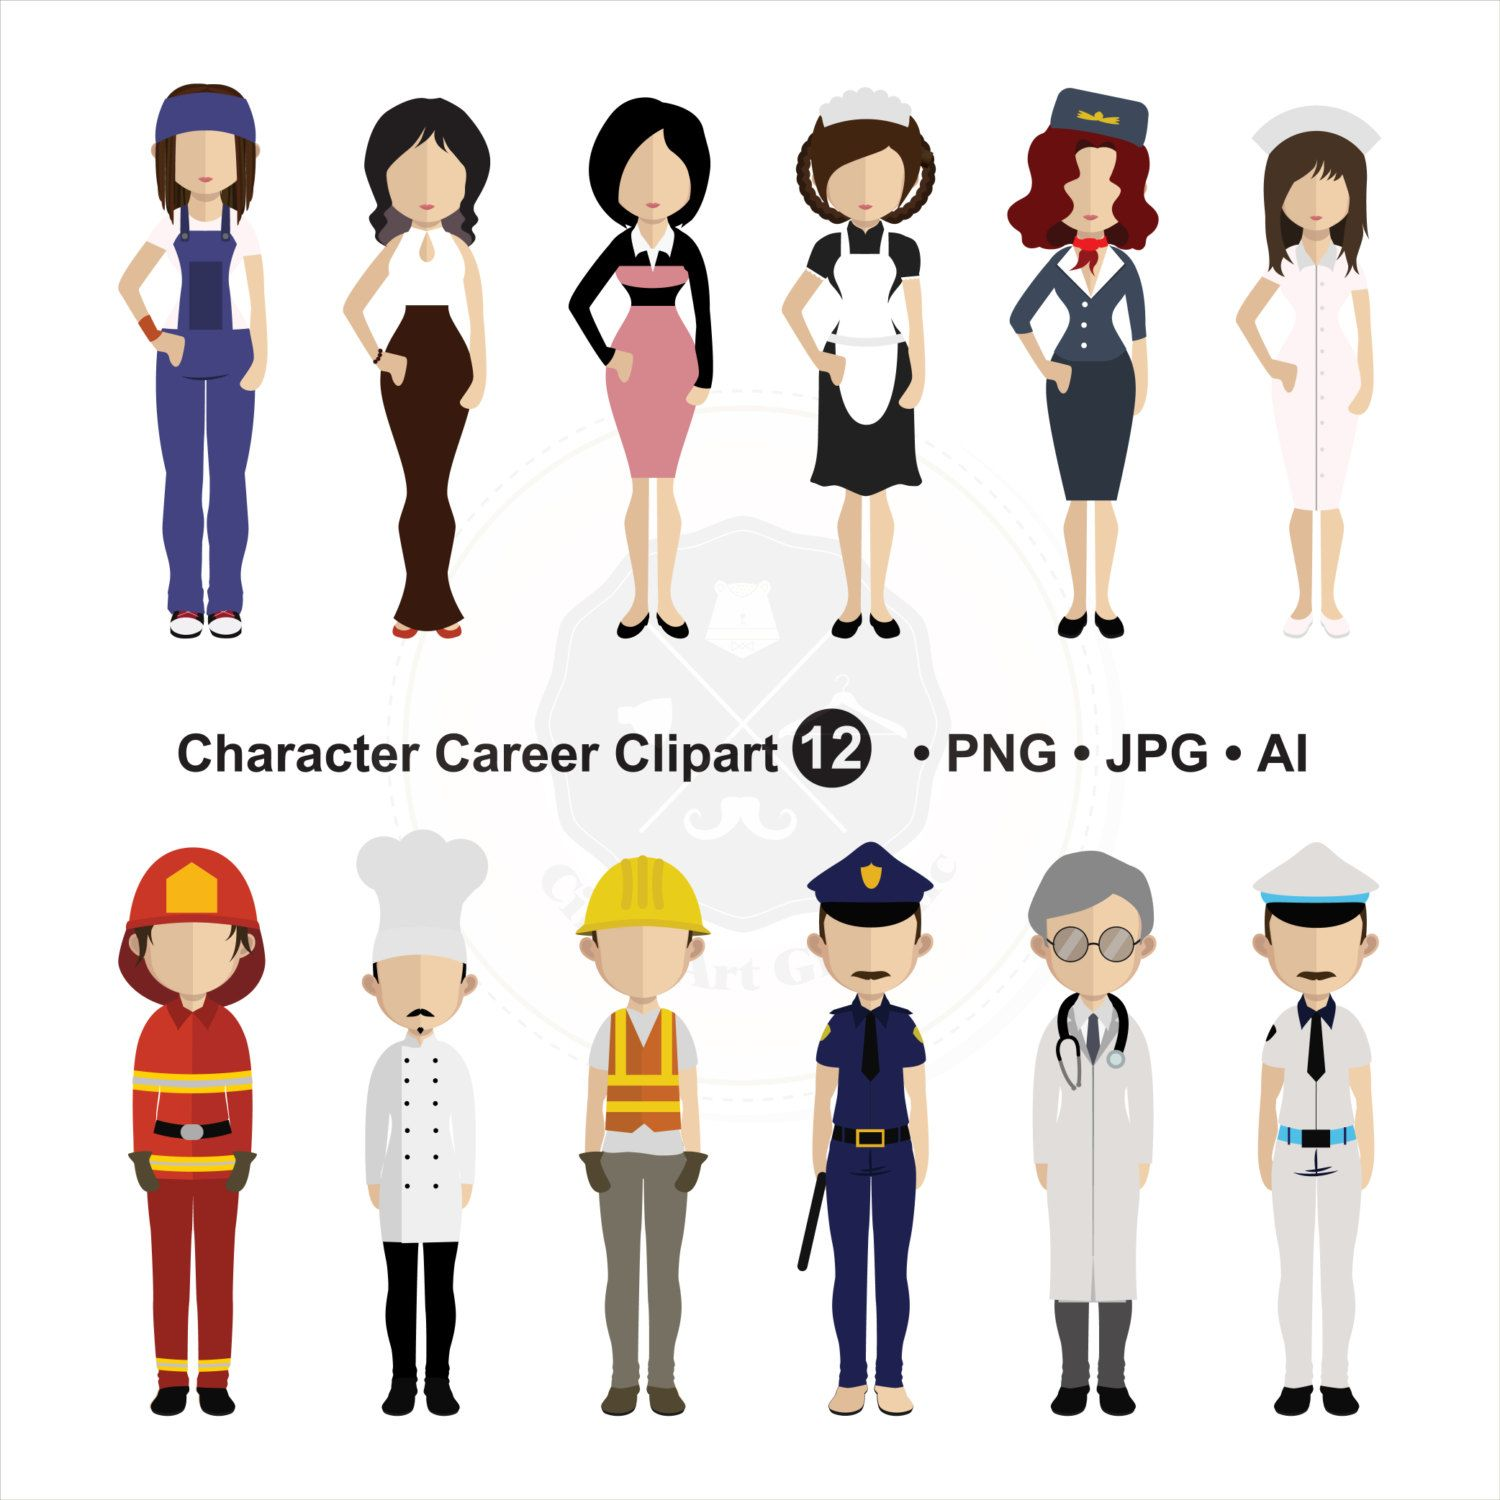 Character Career Clipart, People Clipart, character clipart,,digital.